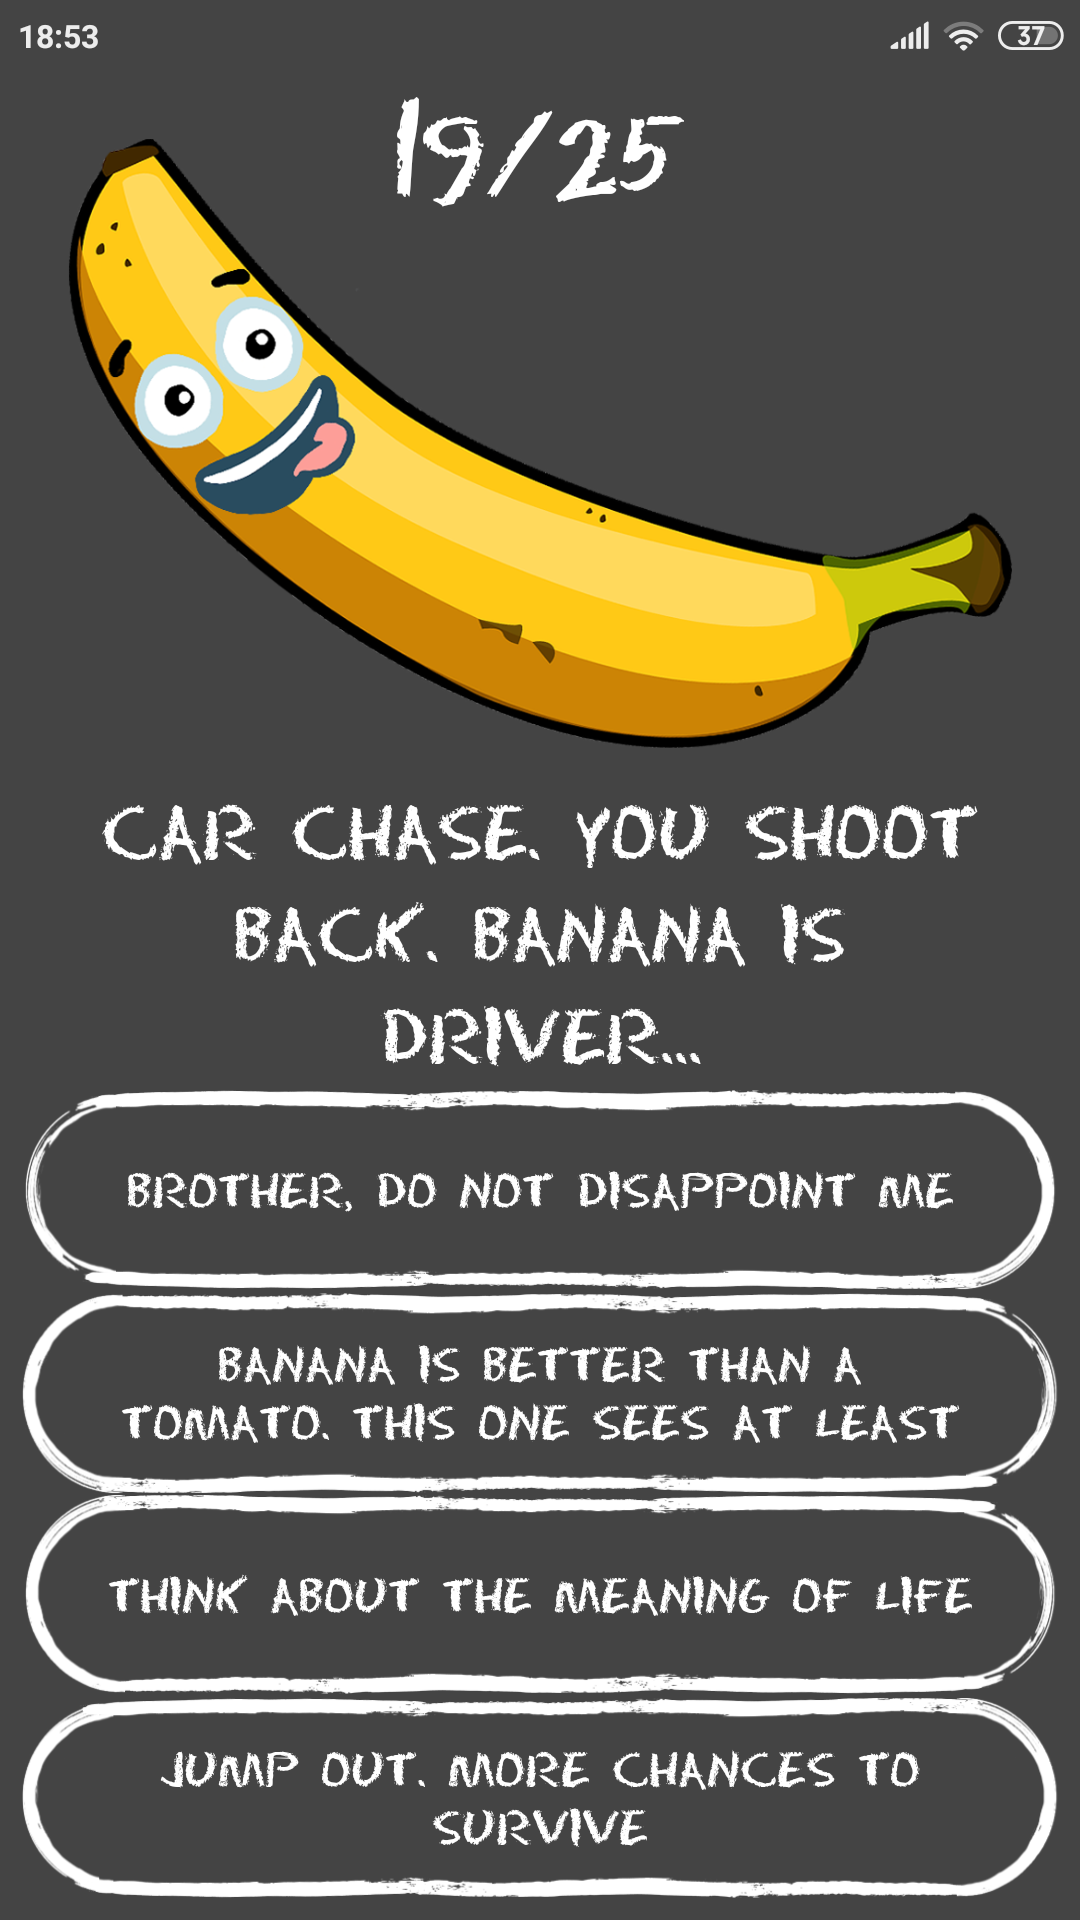 How much are you BANANA?